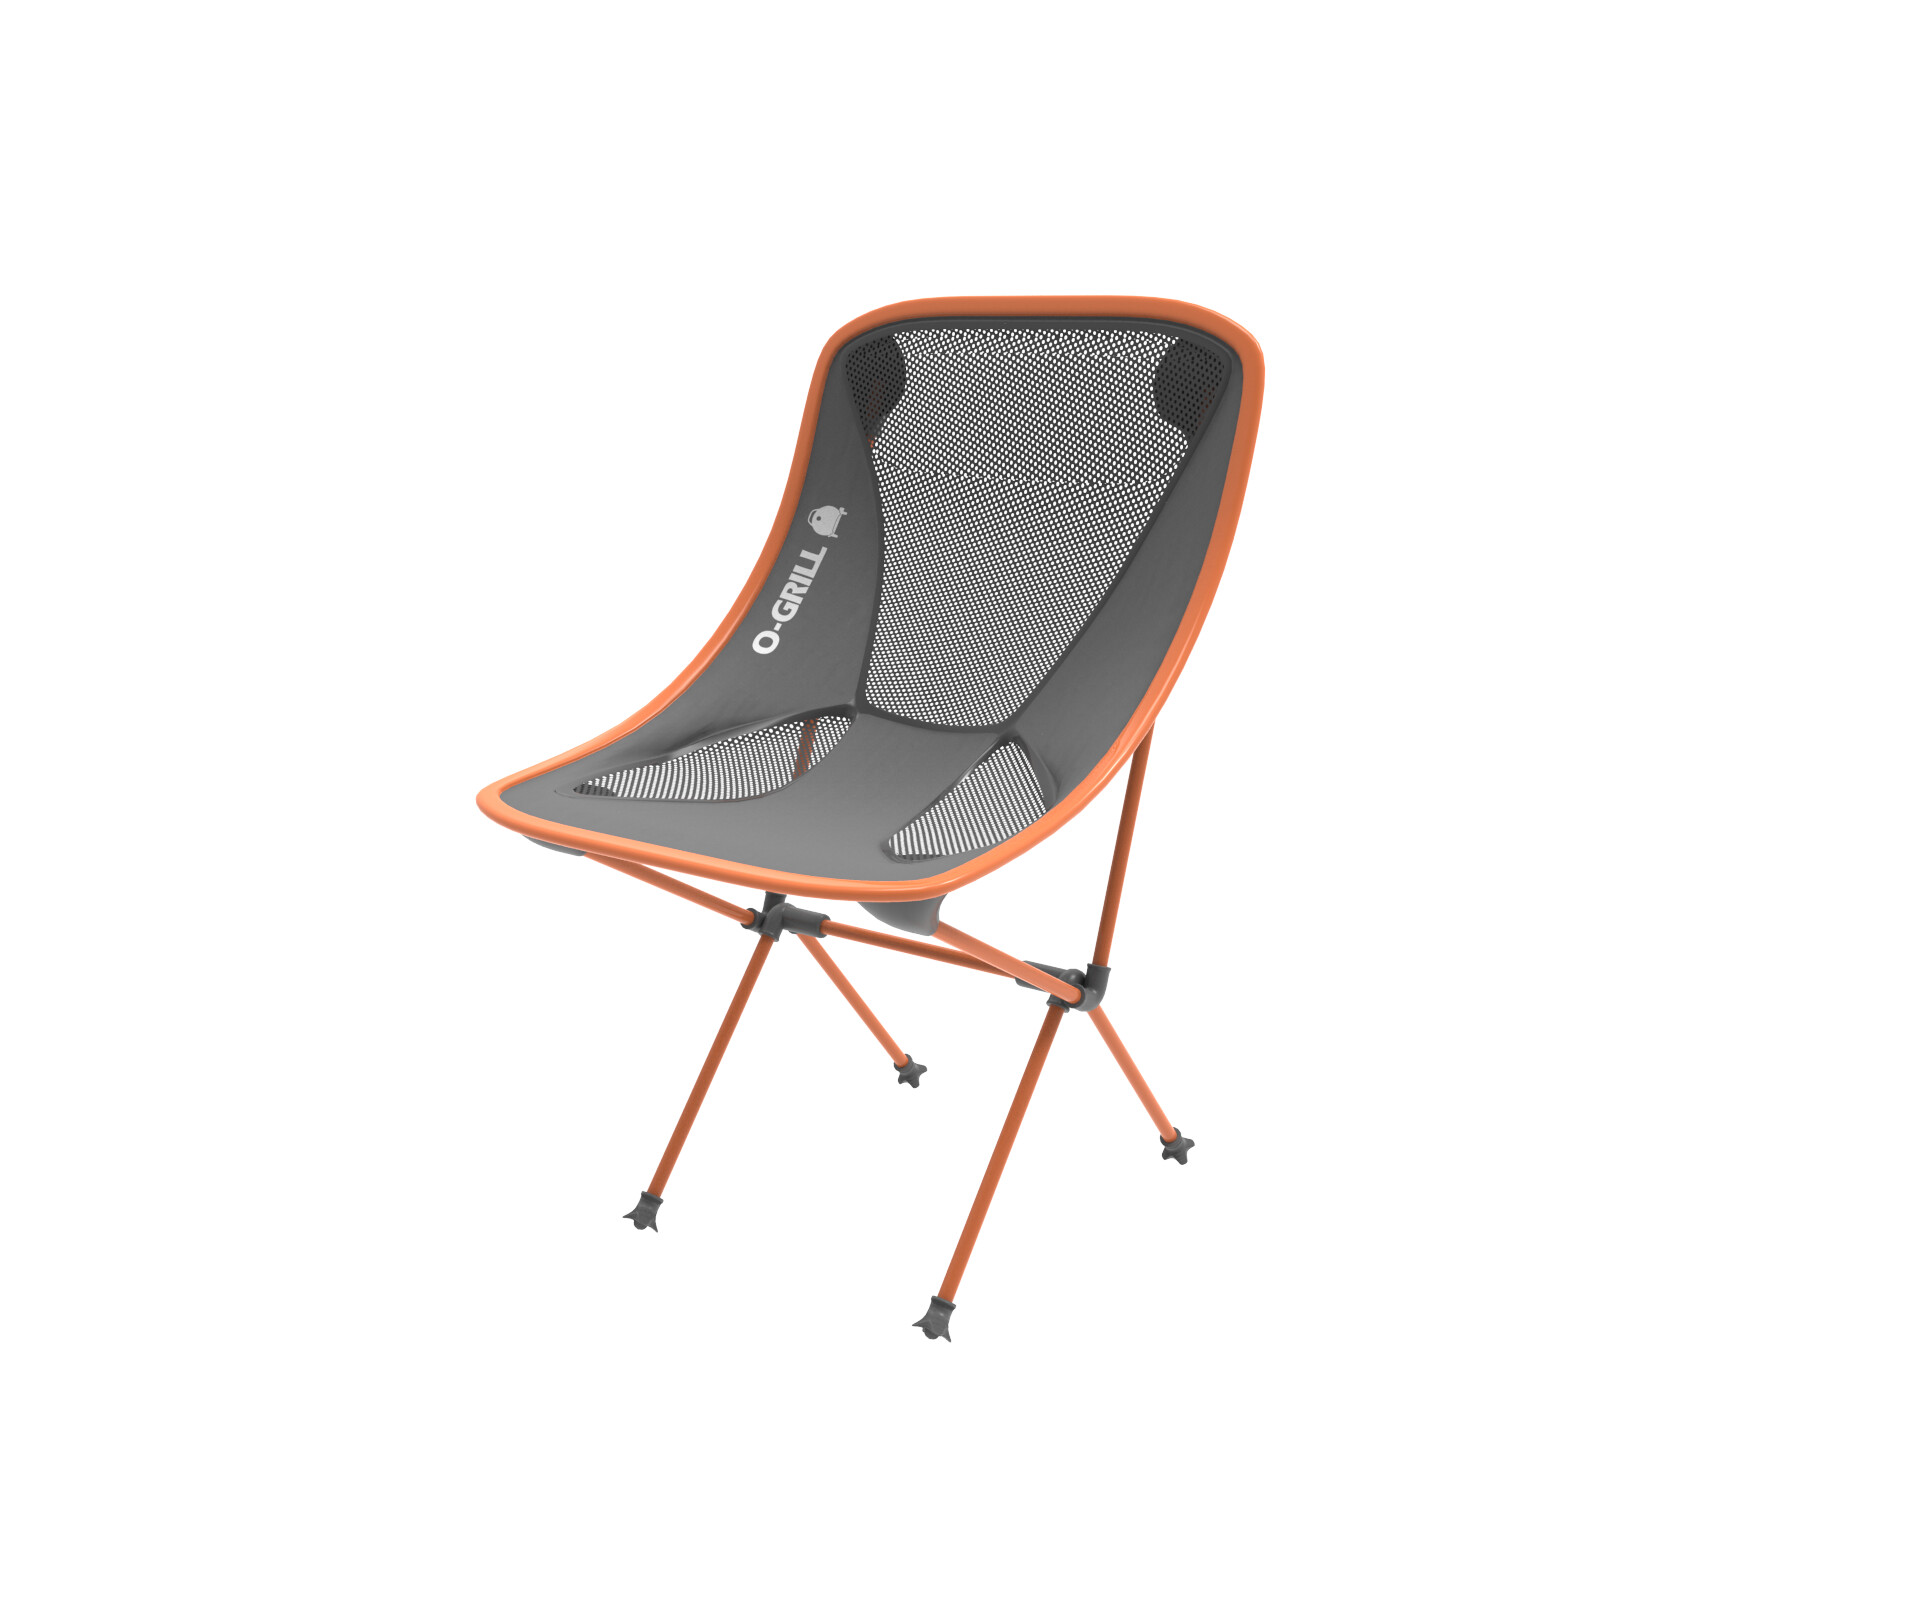 Tom poon chair 1327